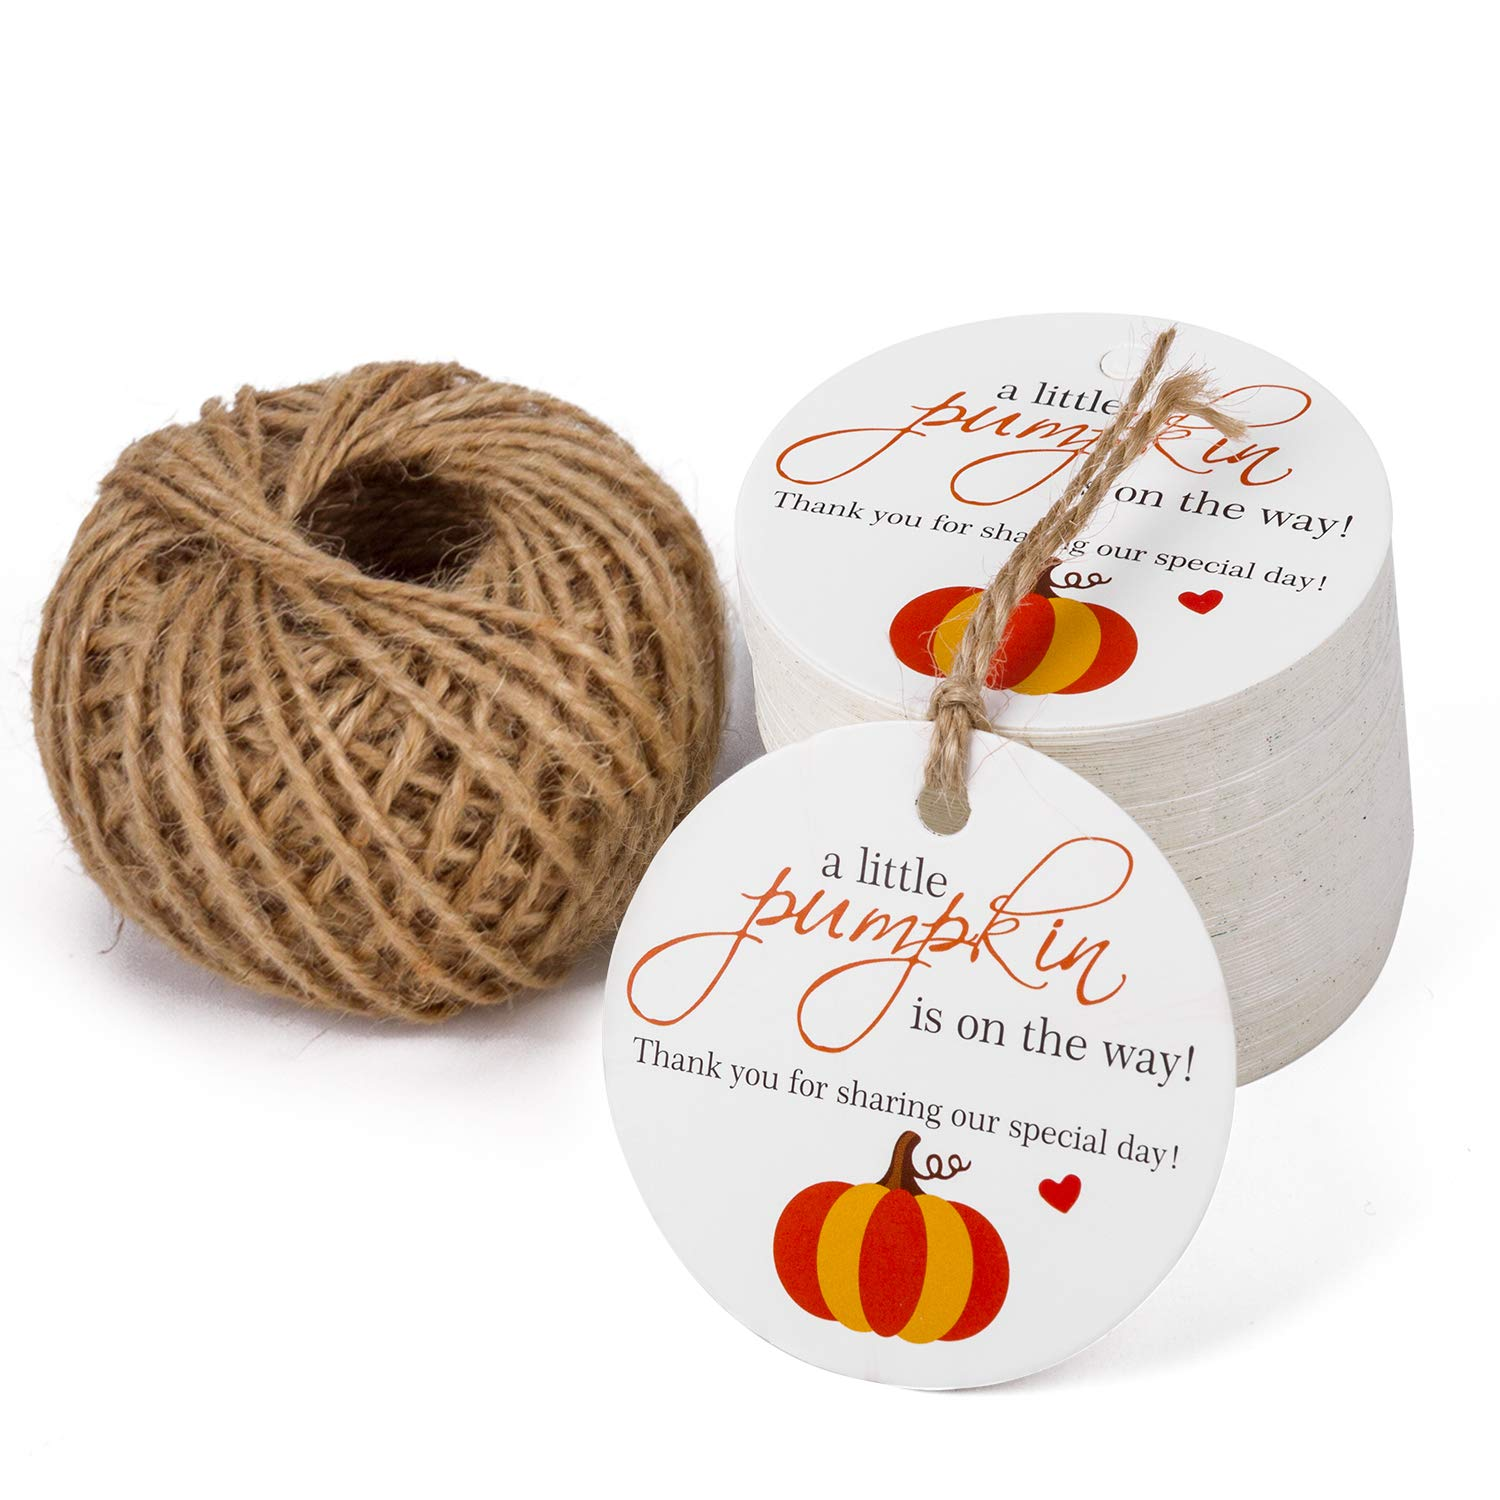 100PCS Valentines DayI DIG YOU Paper Tags with 100 Feet Natural Jute Twine for Valentine Day Party Favors WRAPAHOLIC Gift Tags with String